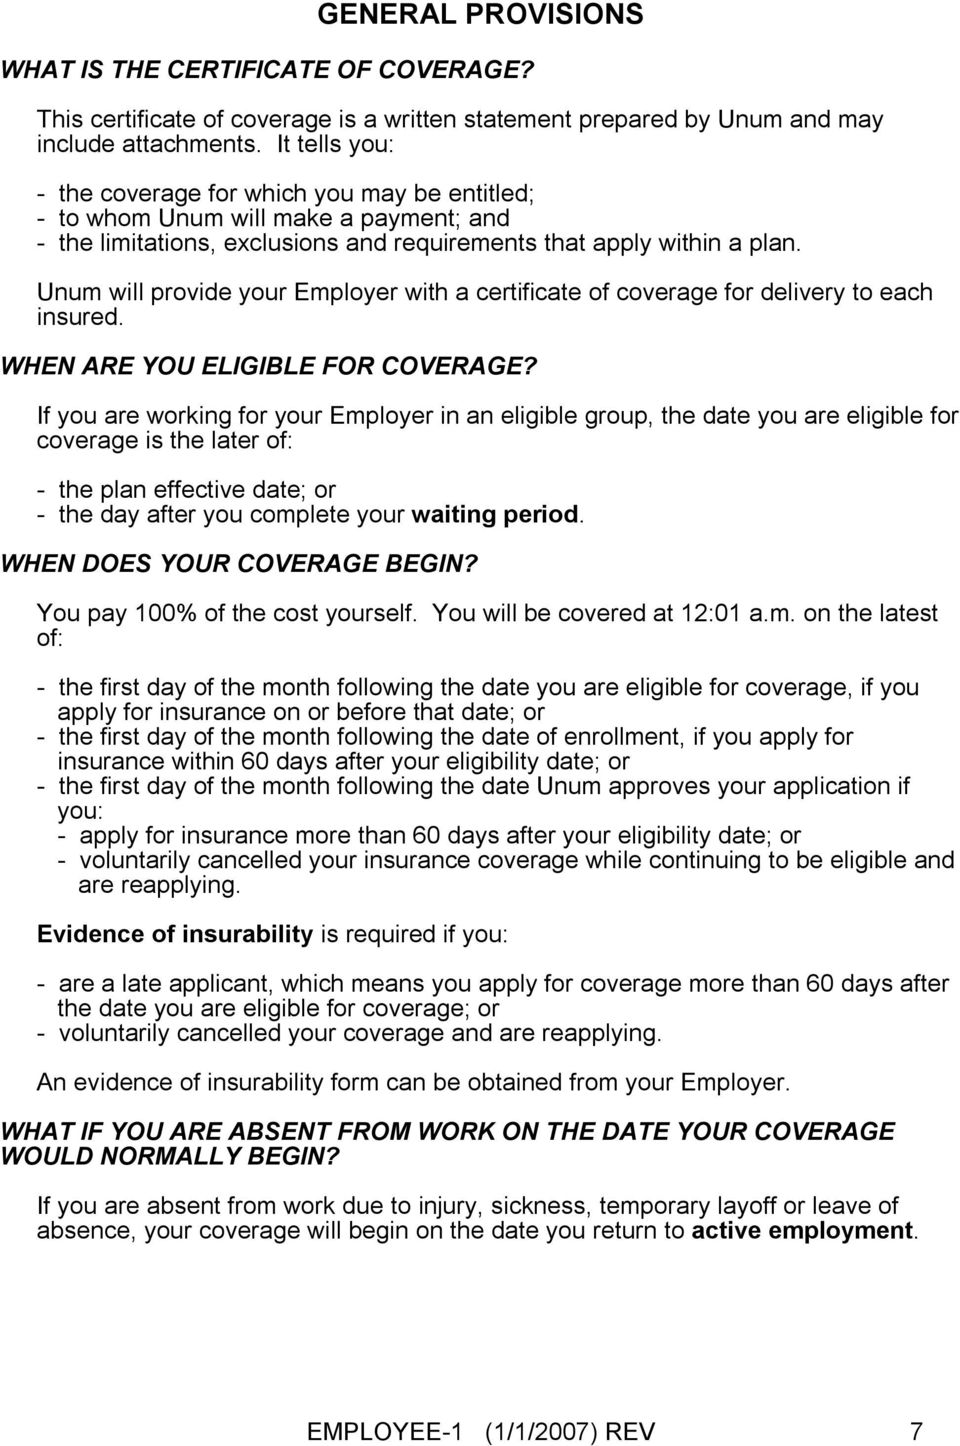 Unum will provide your Employer with a certificate of coverage for delivery to each insured. WHEN ARE YOU ELIGIBLE FOR COVERAGE?